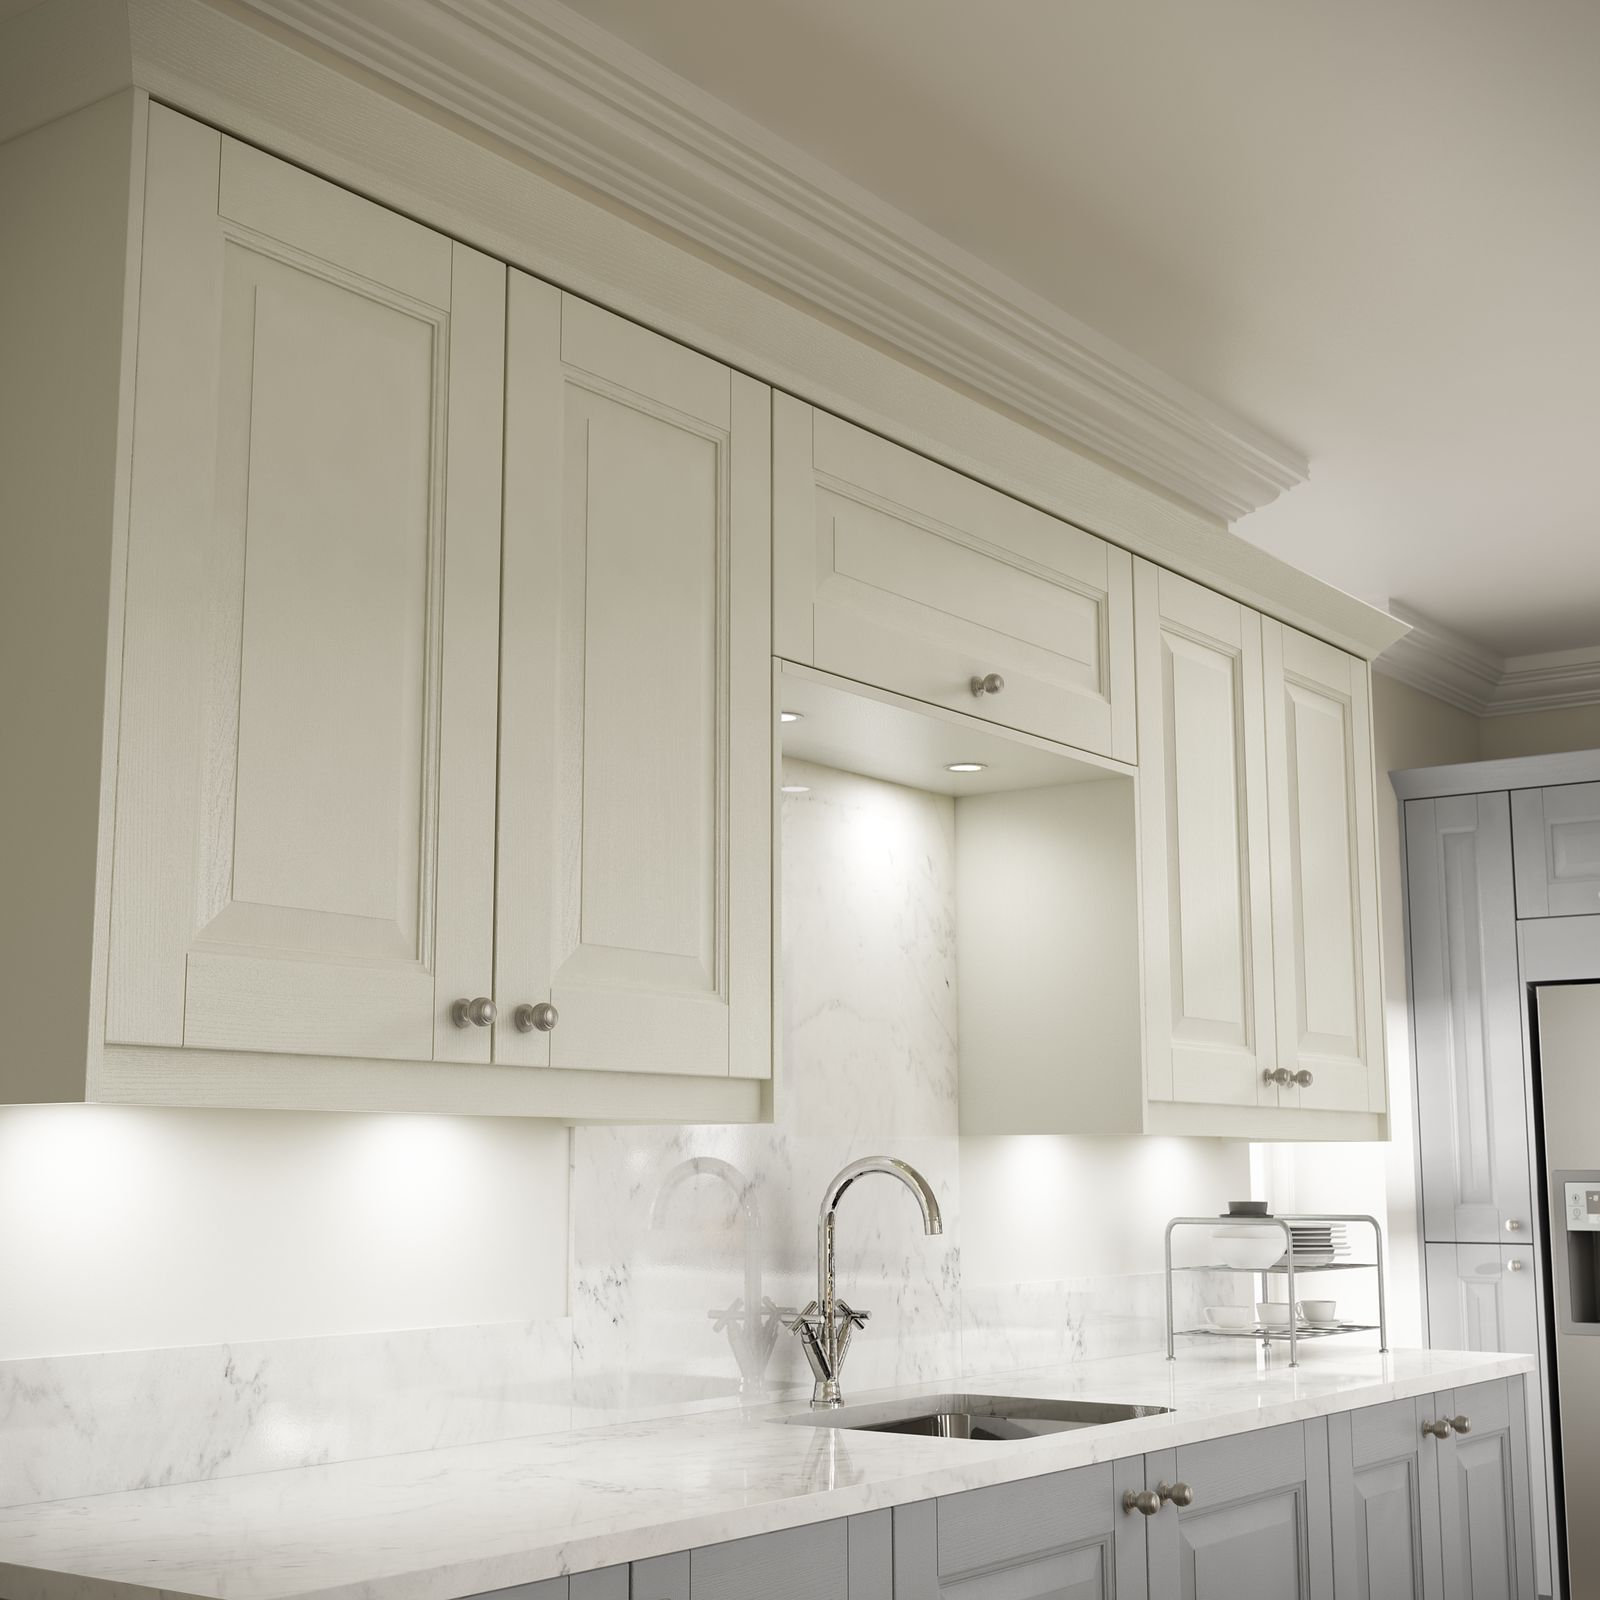 Wexford Ivory Detail 1-1600x1600